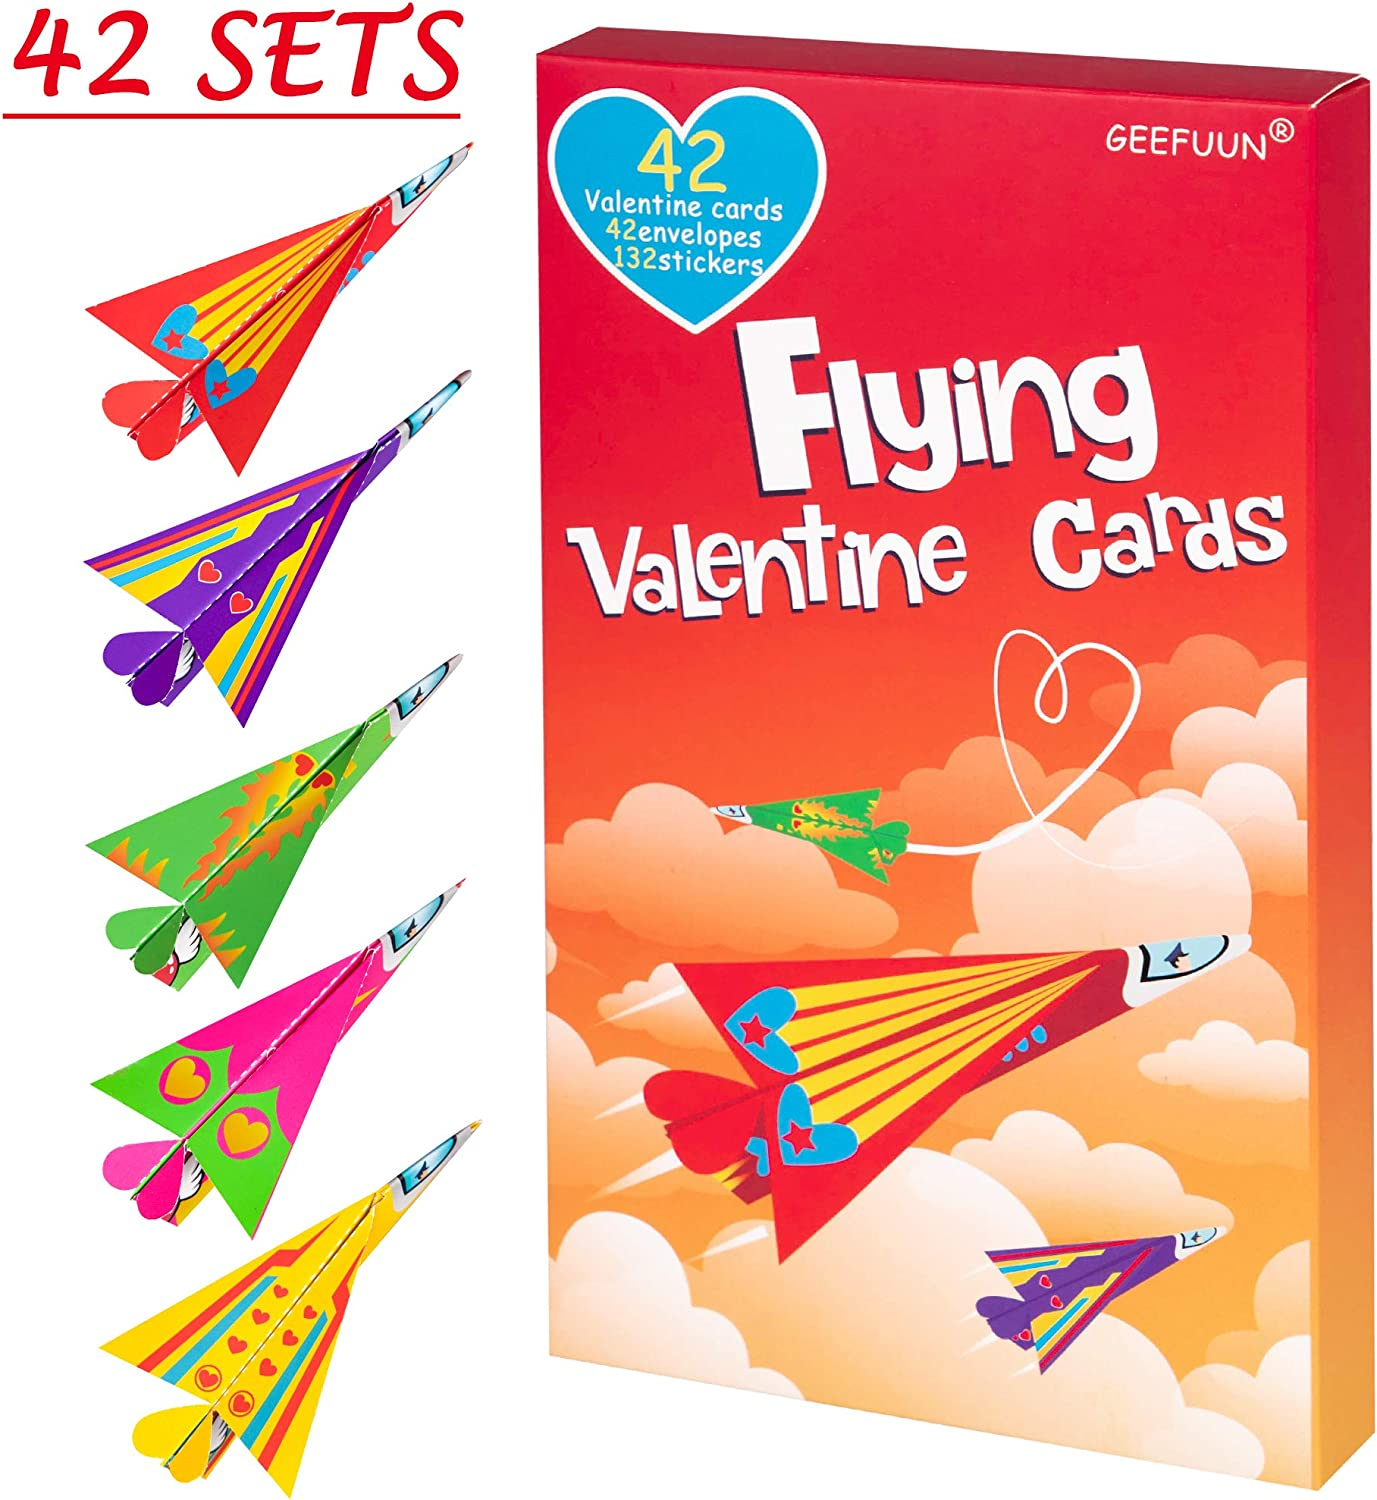 42 Envelopes 42 Paper Airplane Cards 132 Stickers Heart Crafts School Classroom Exchange Party Gift Favor Geefuun Valentines Day Cards for Kids